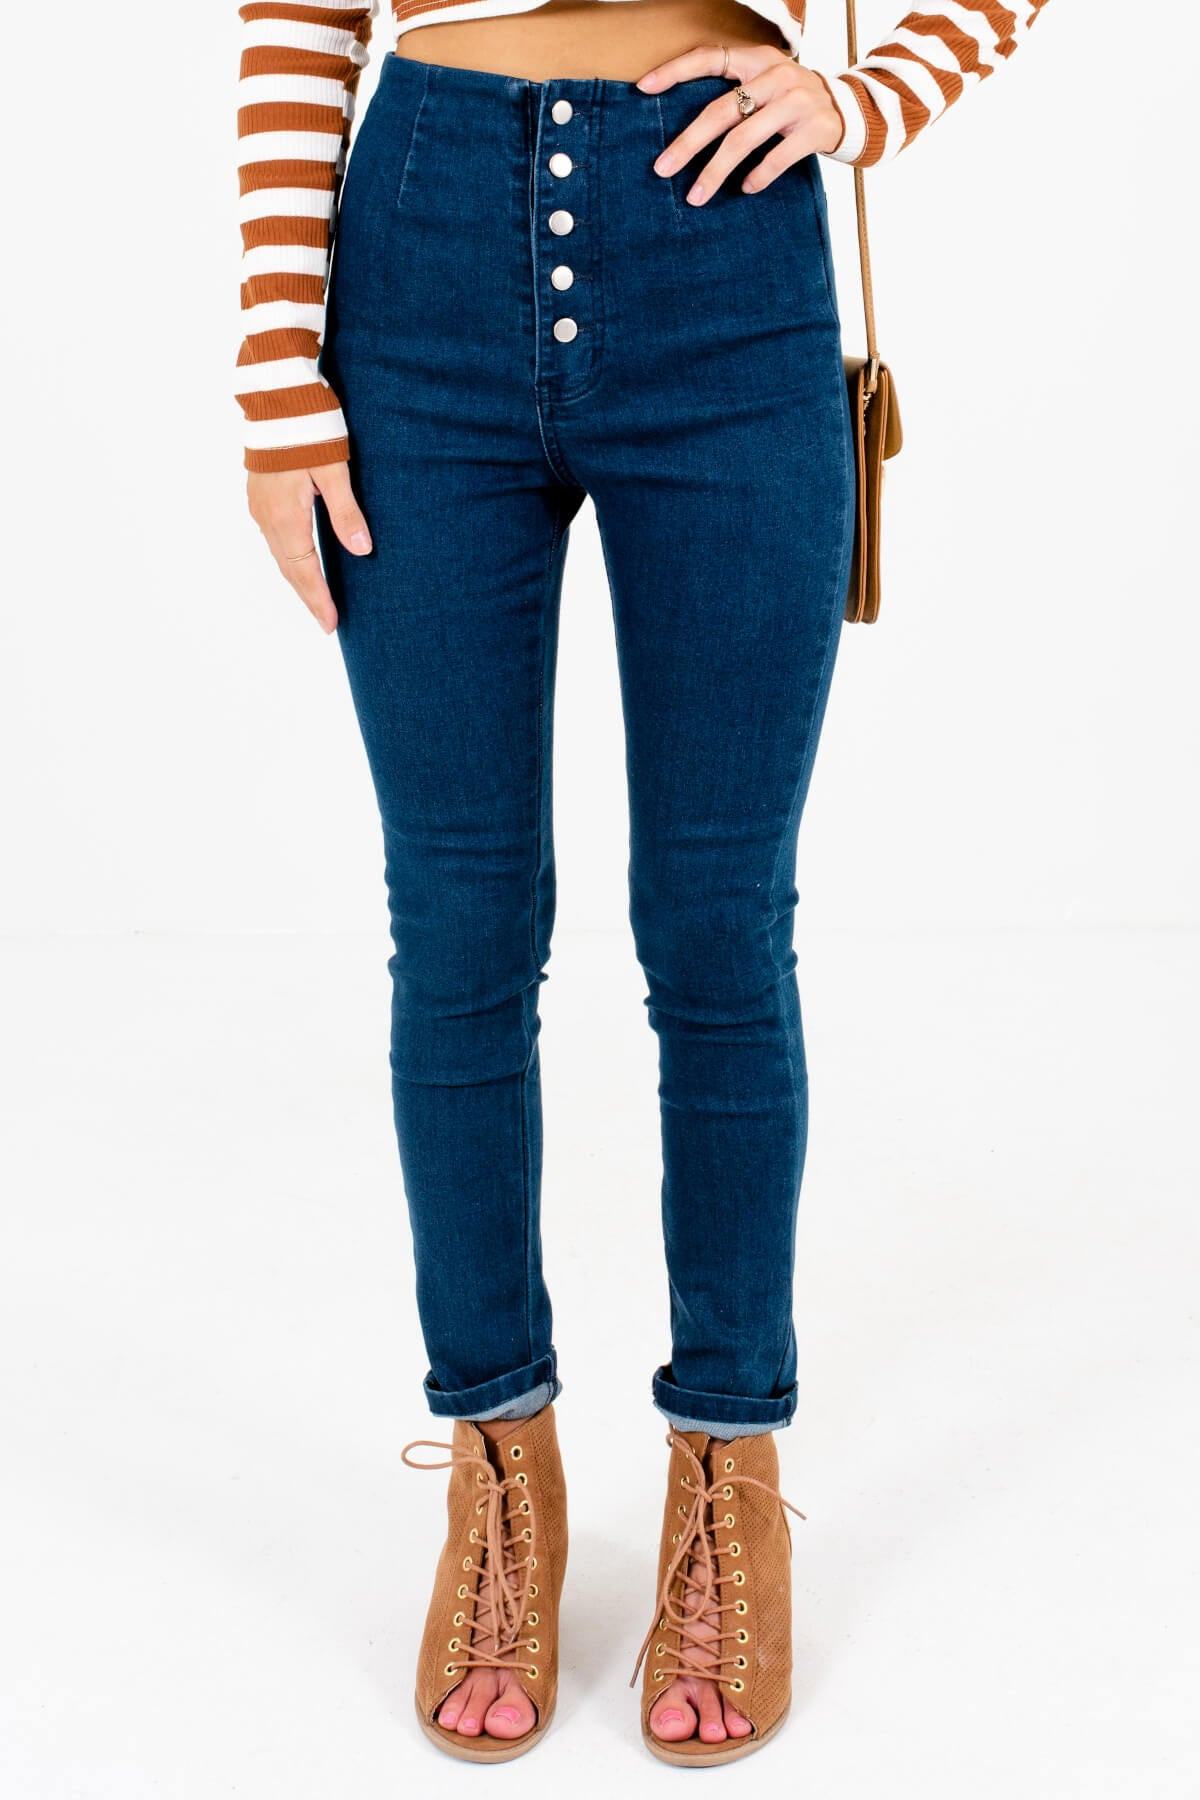 Dark Wash Blue Button-Up Front Boutique Skinny Jeans for Women